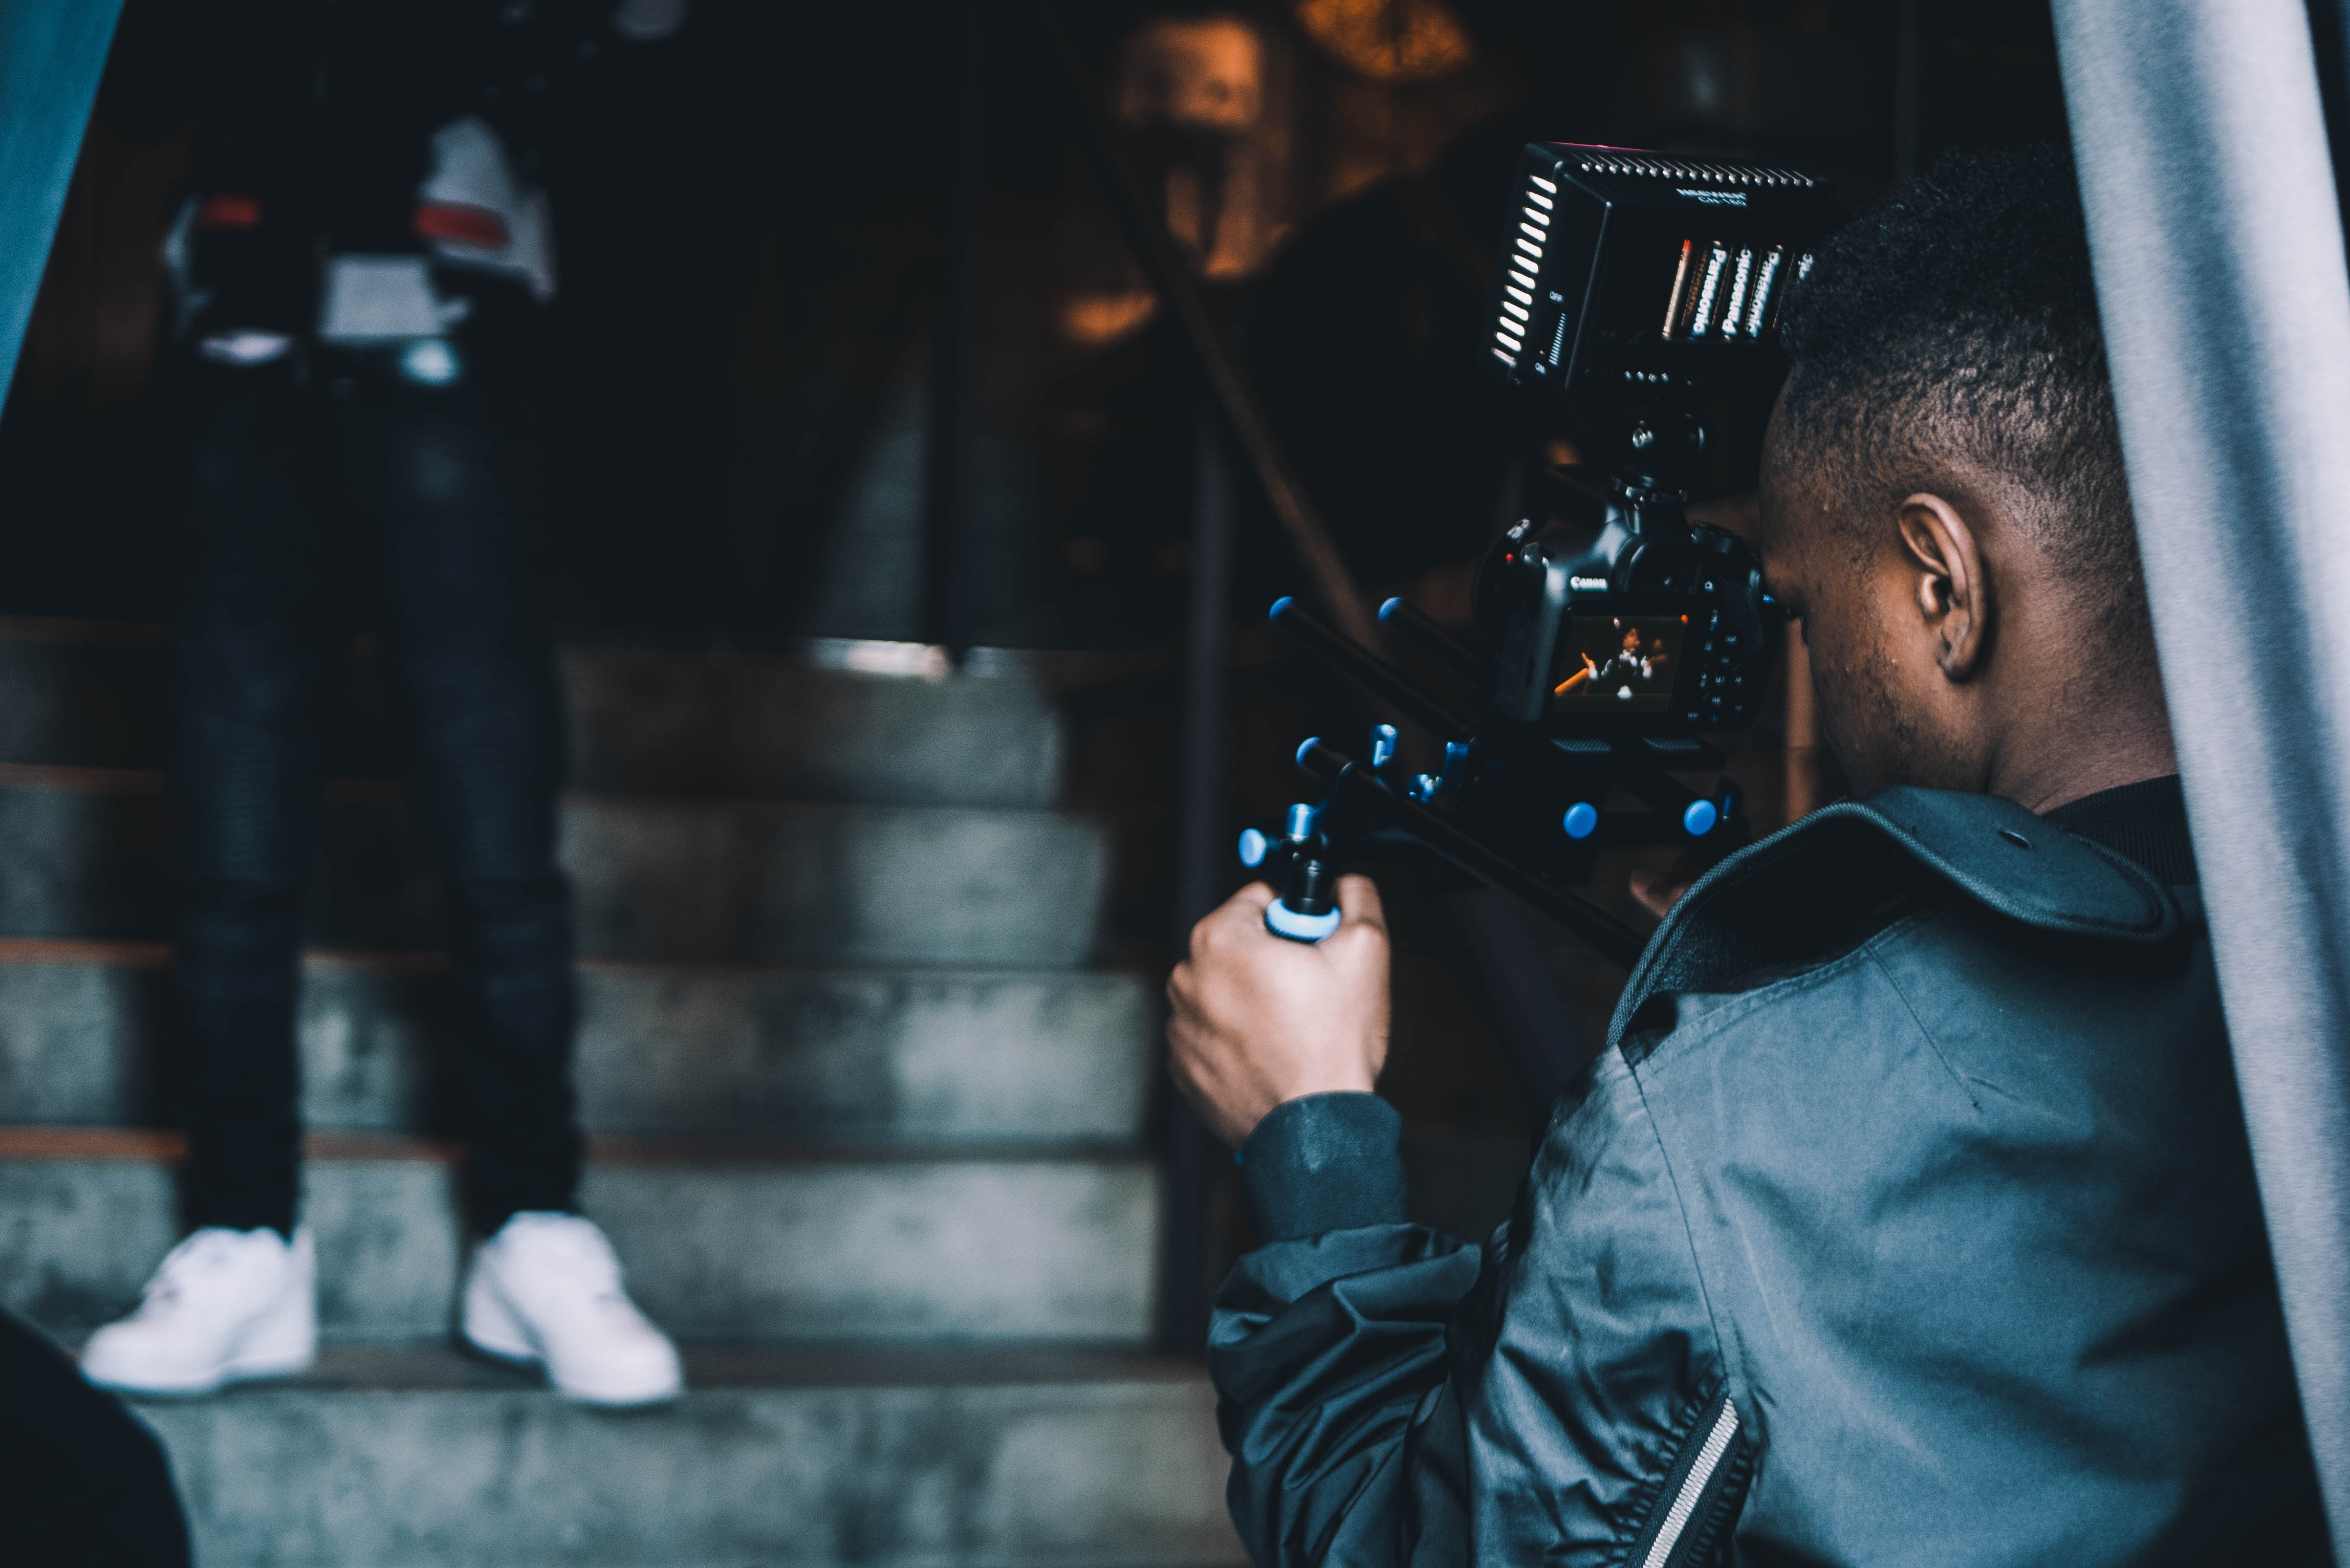 What You Need to Know About Making an Indie Film